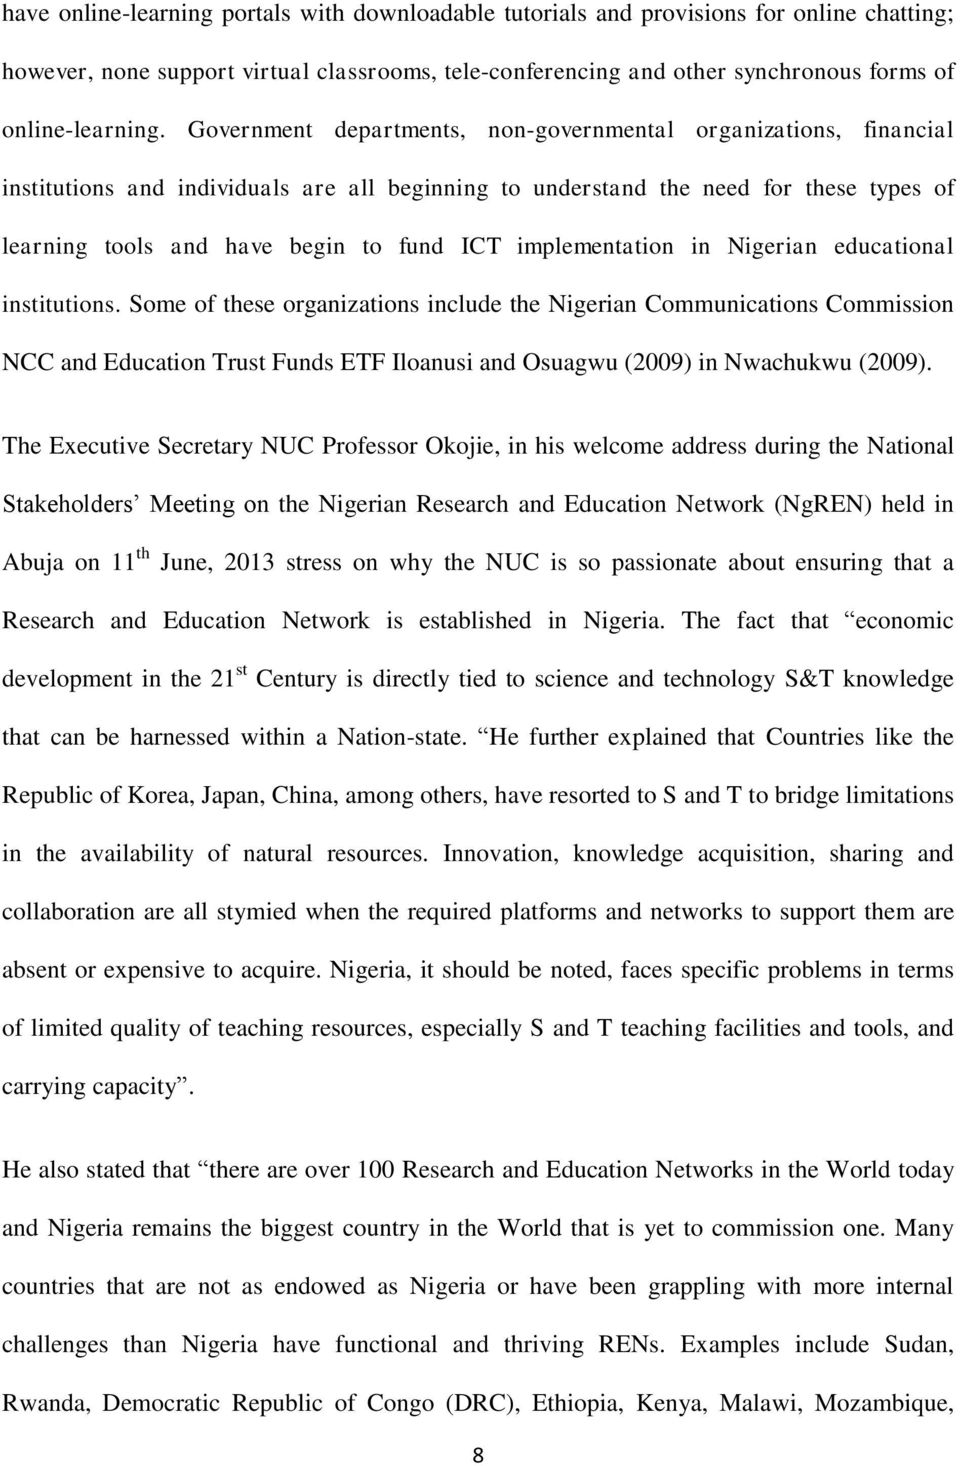 implementation in Nigerian educational institutions.